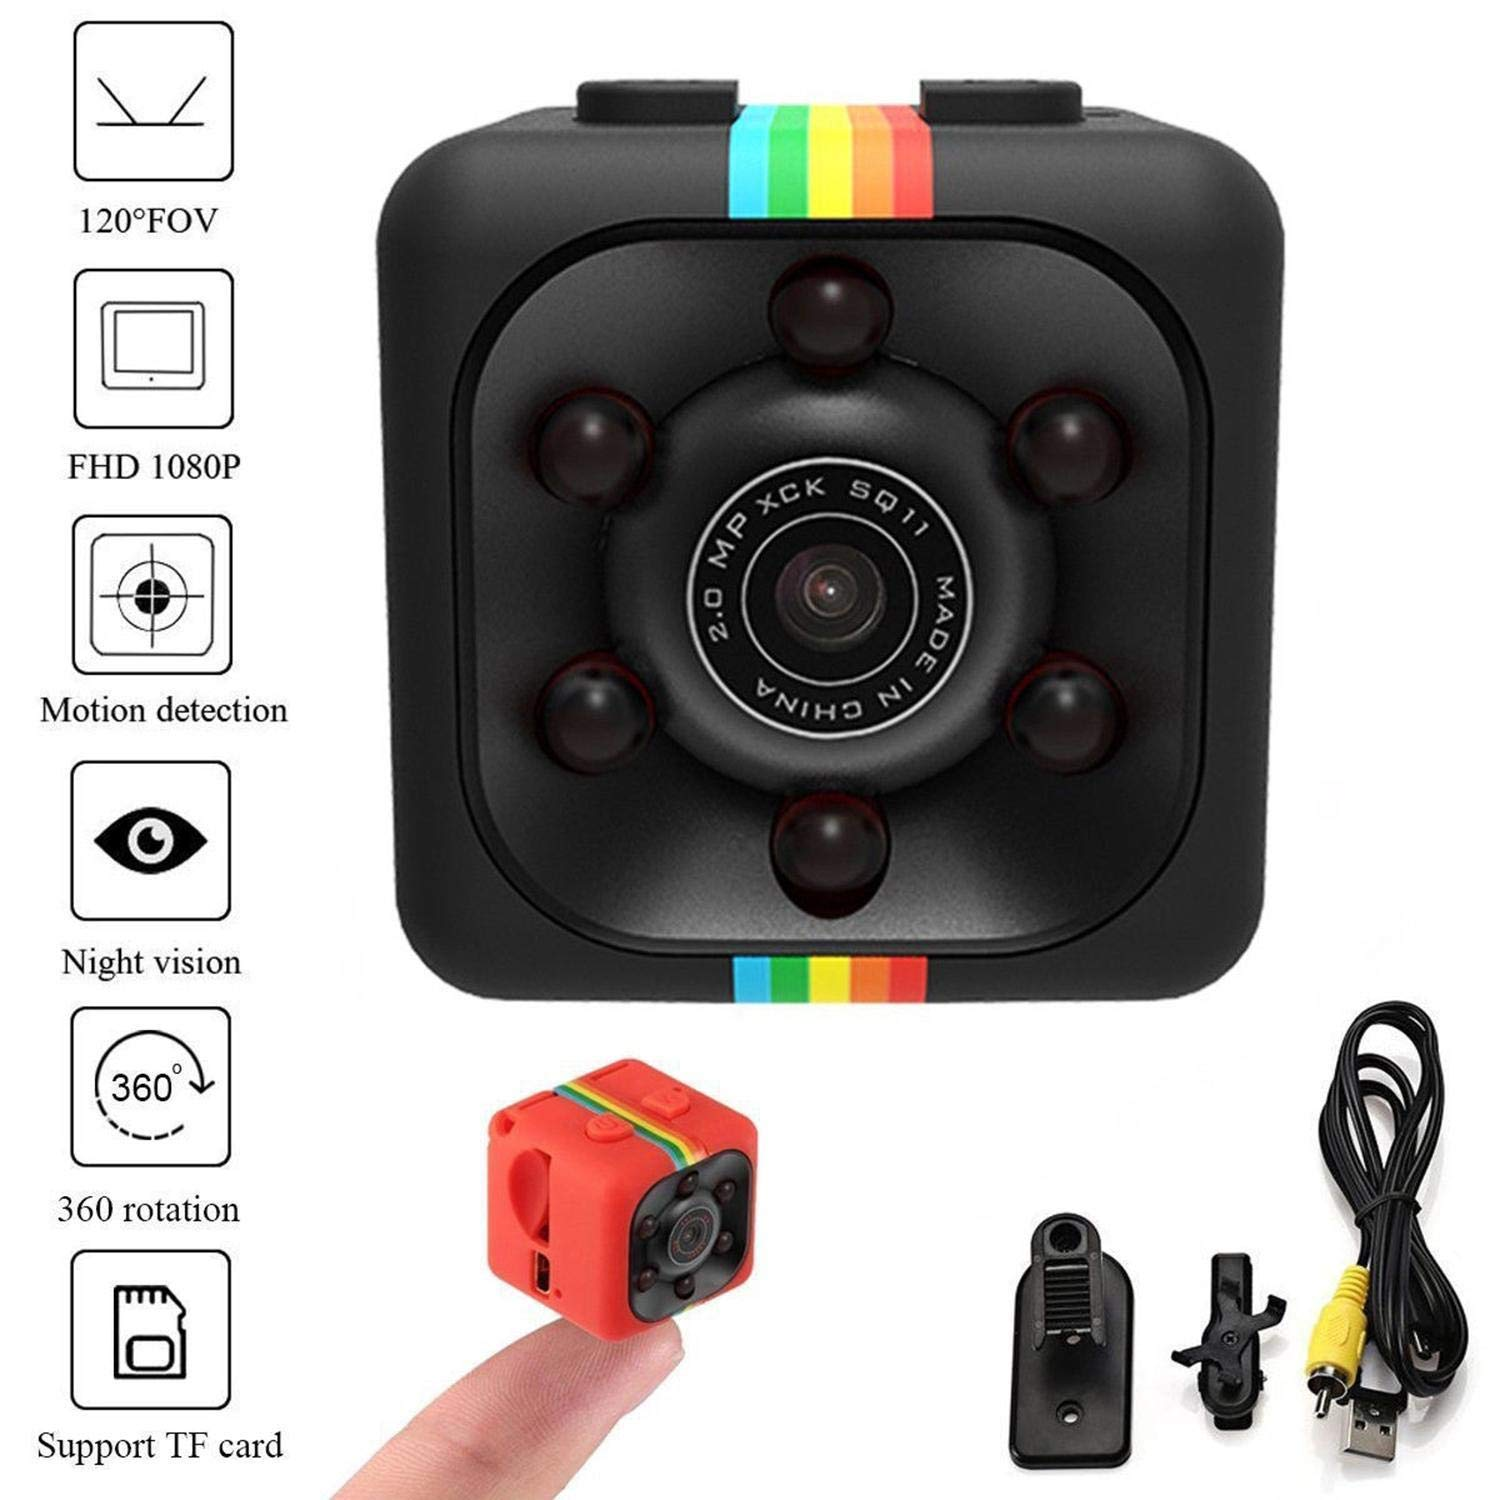 liwei18 Car HD Mini Camera 360 Degree Video Recording Support TF by liwei18